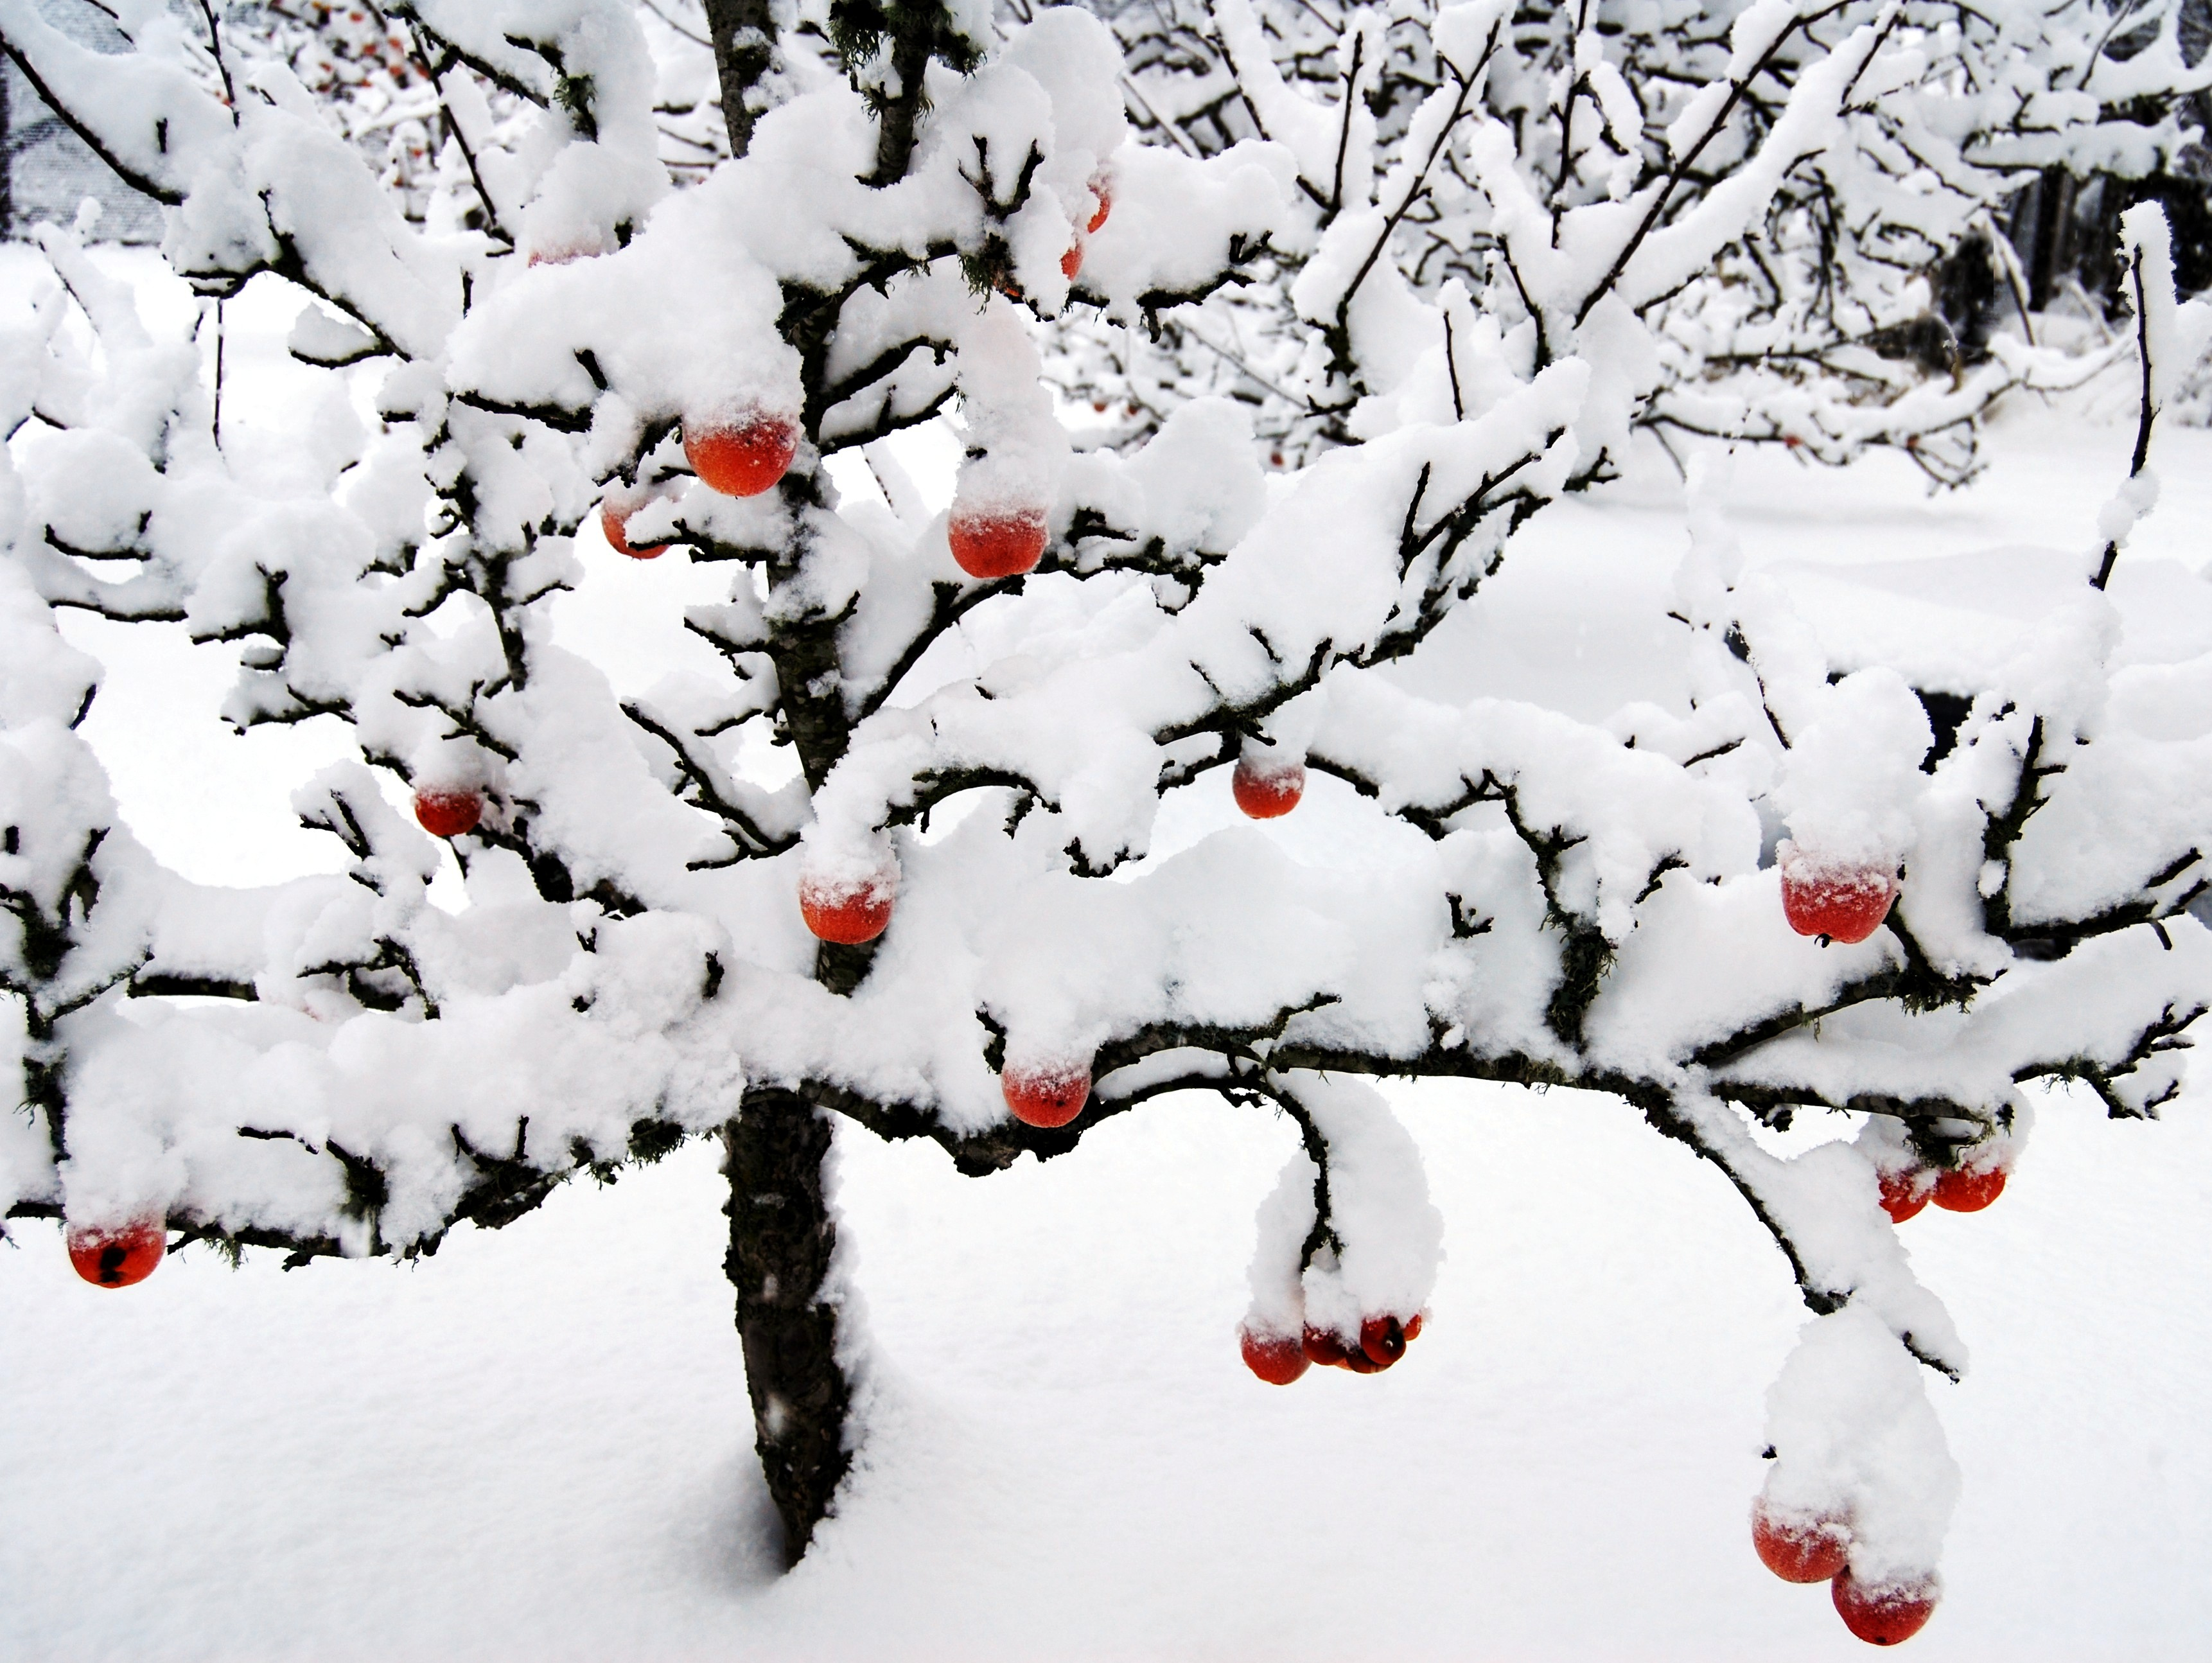 ambrosia in winter